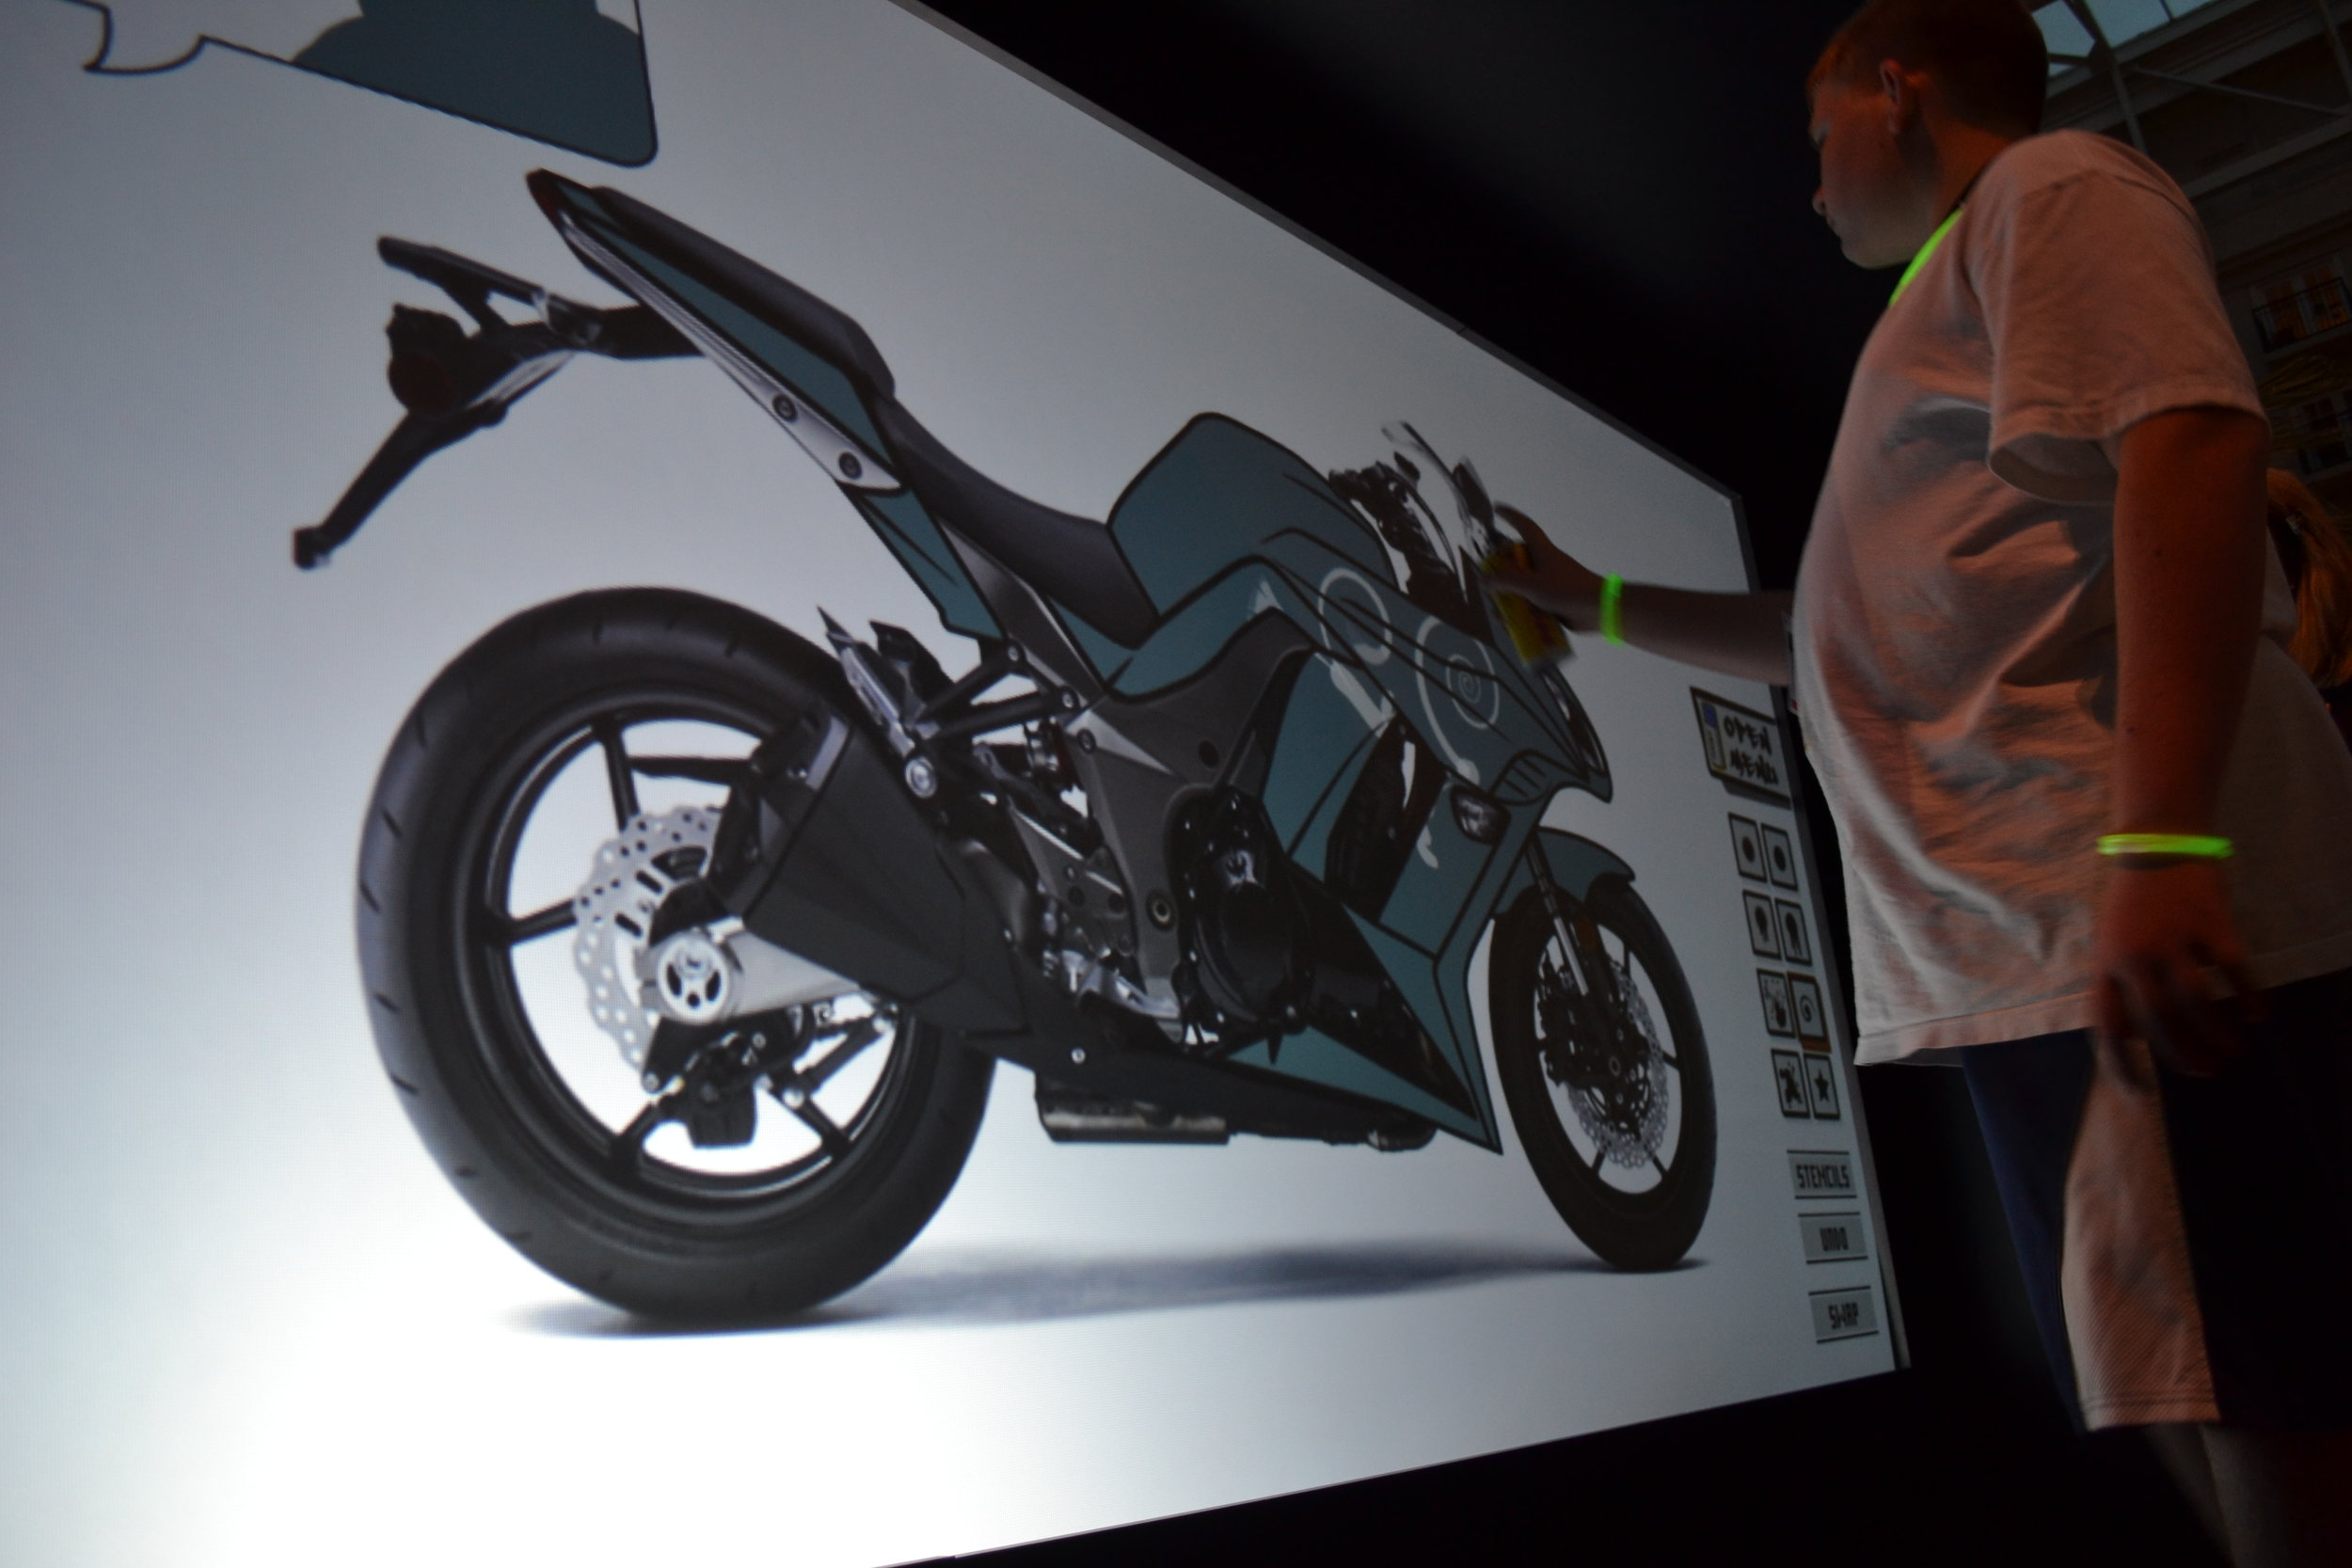 kawasaki-design-a-bike_6243430651_o_29092798672_o.jpg